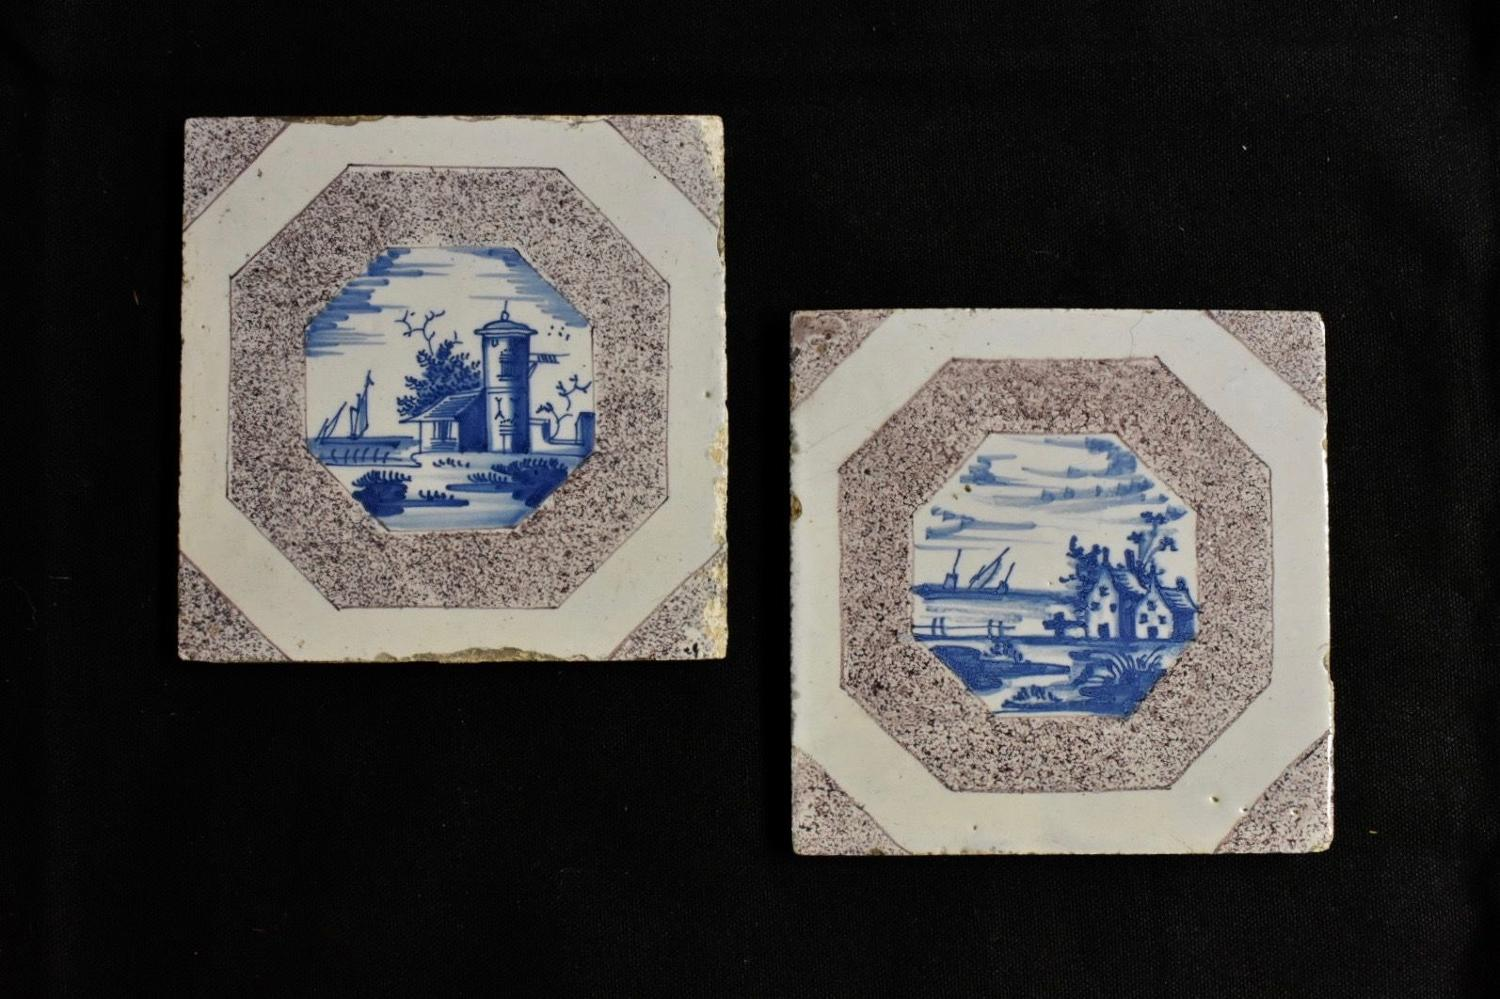 Pair of 18th c. Dutch Delft tiles